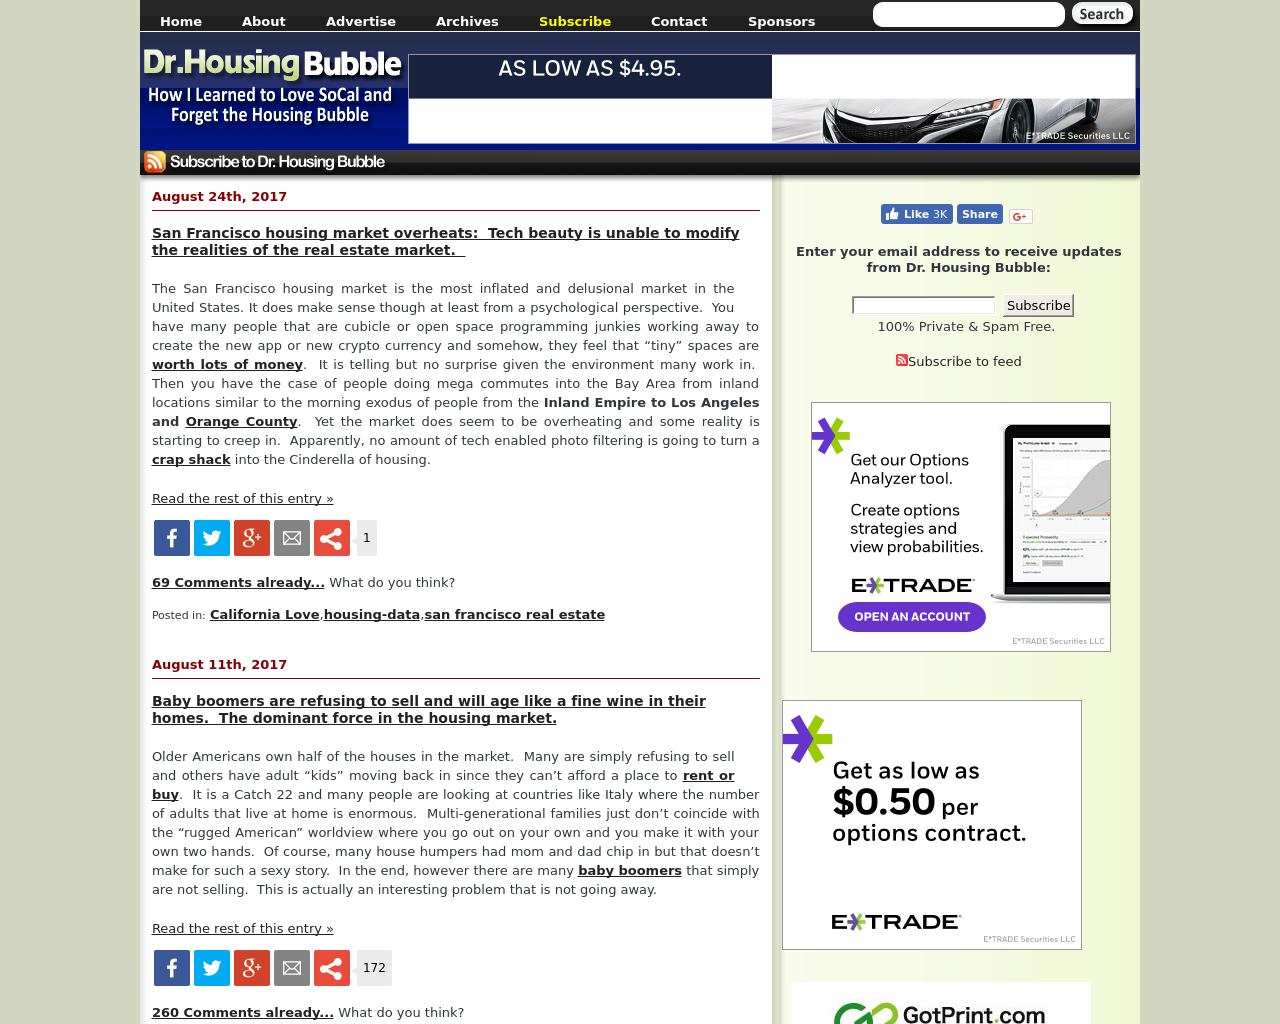 Dr.-Housing-Bubble-Blog-Advertising-Reviews-Pricing